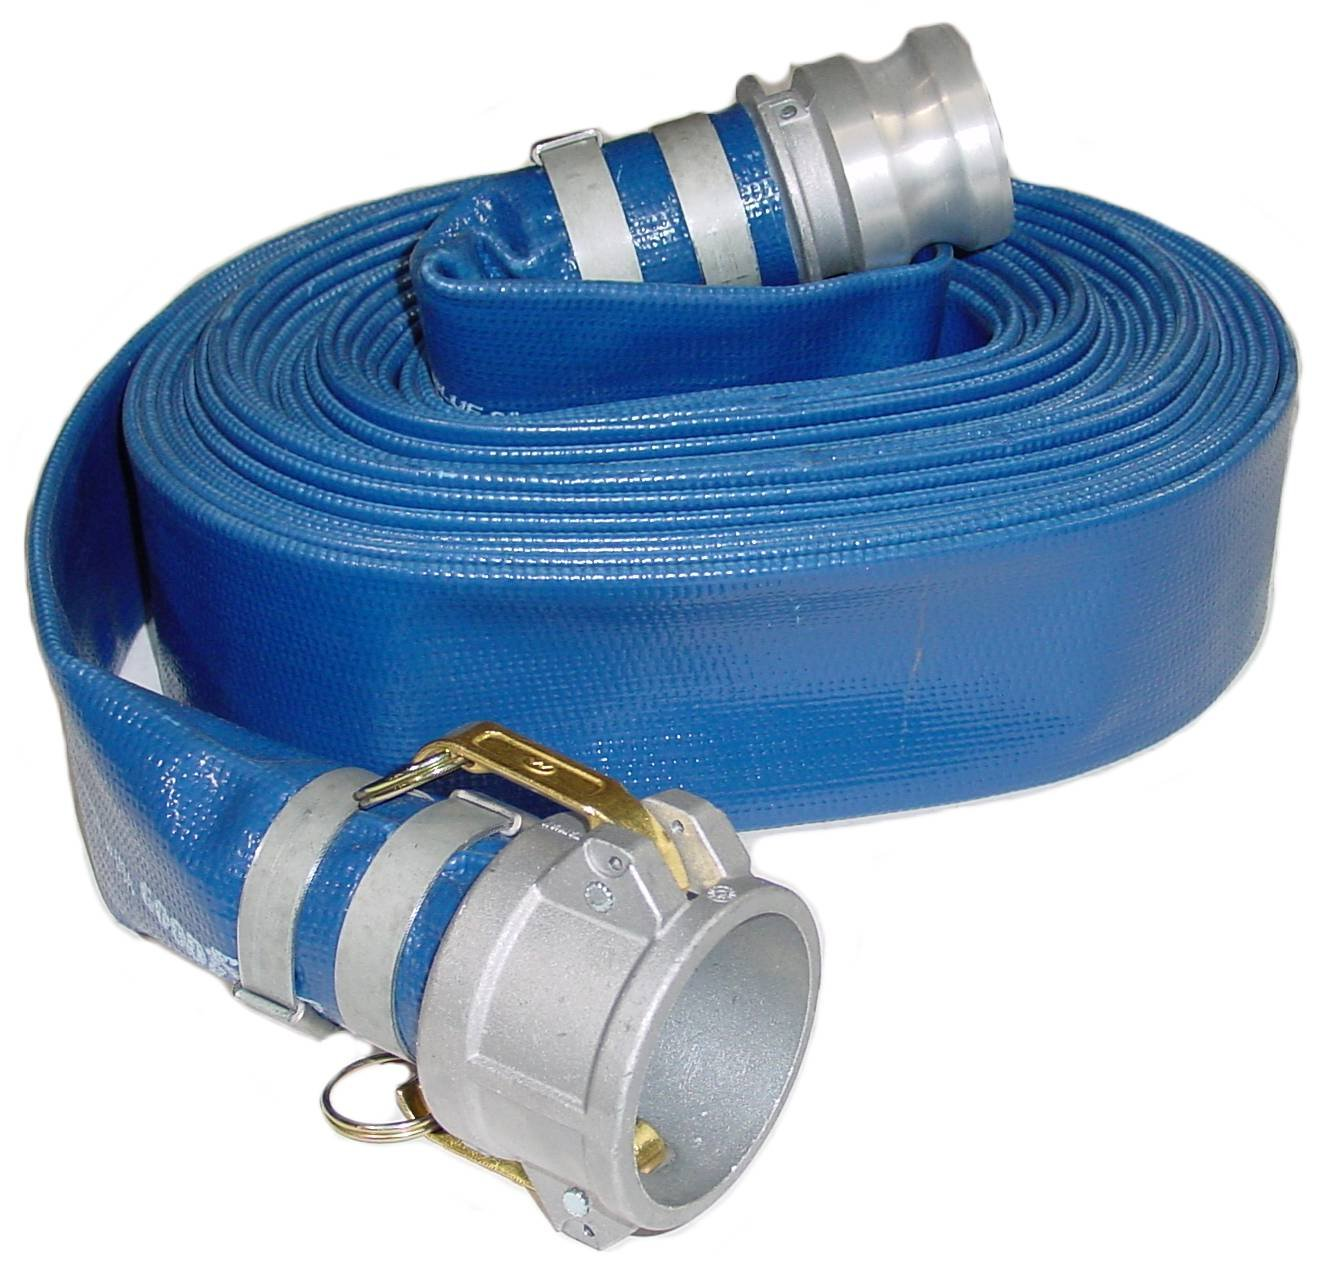 Abbott Rubber PVC Discharge Hose Assembly, Blue, 2'' Male X Female Cam and Groove, 65 psi Max Pressure, 25' Length, 2'' ID by Abbott Rubber